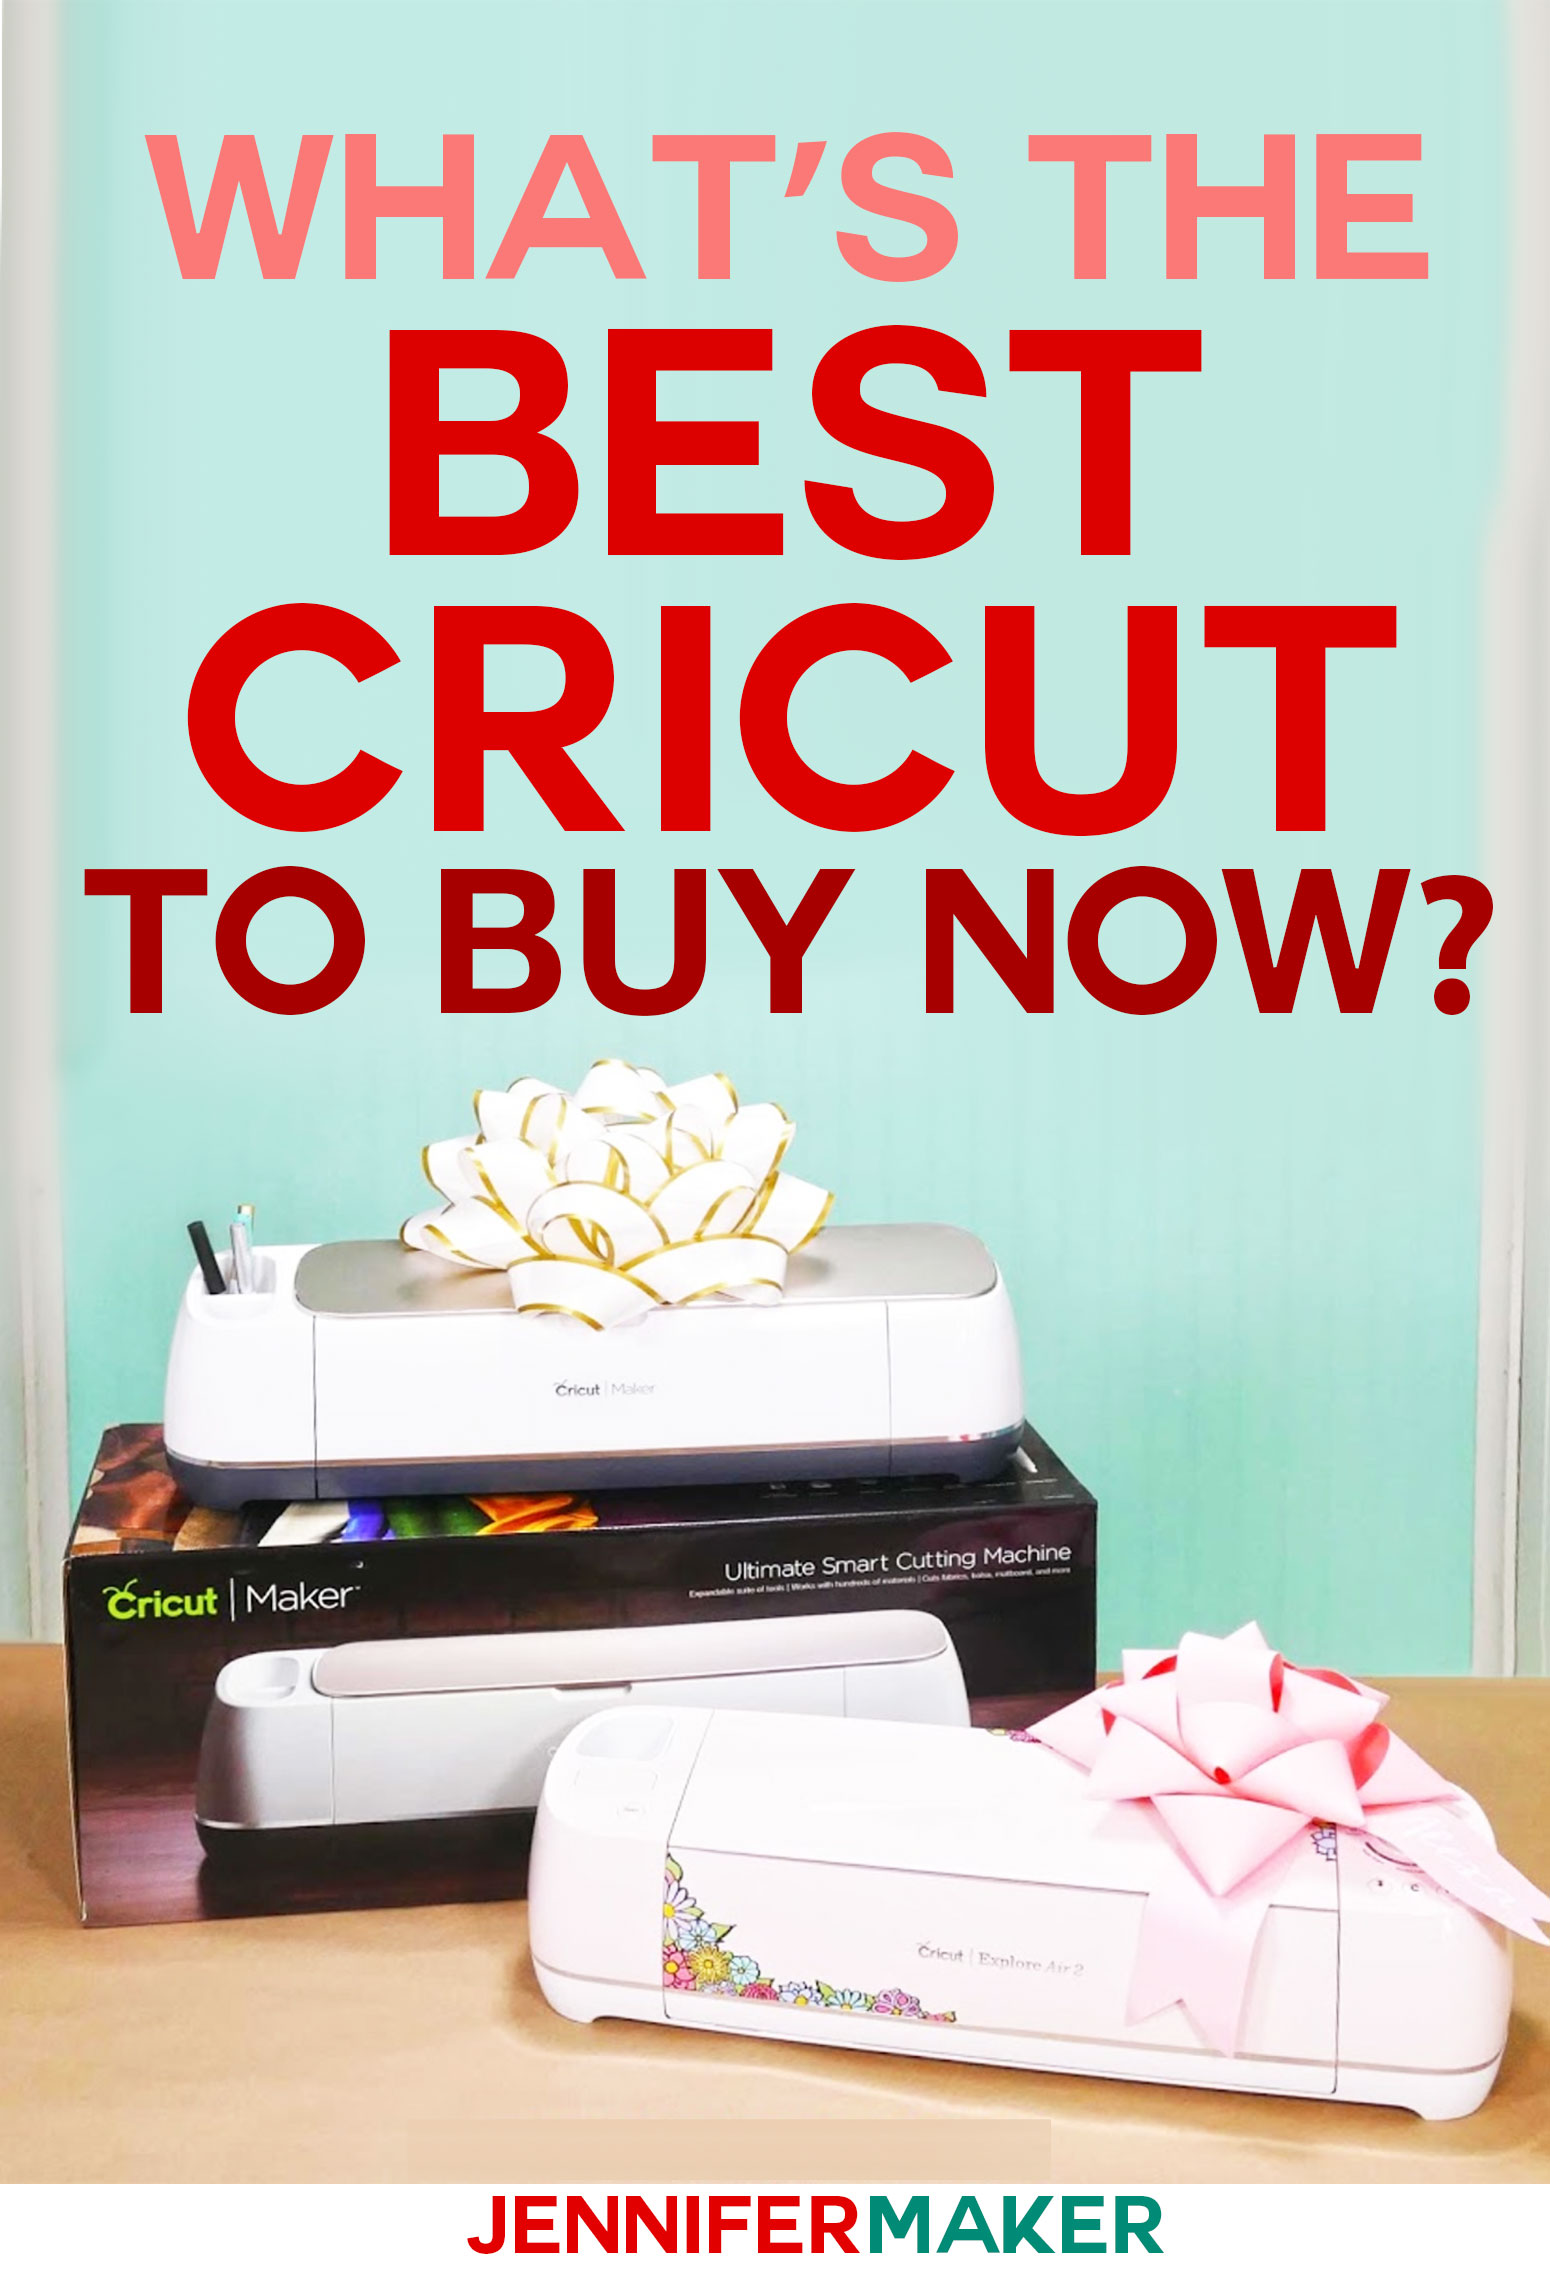 What's the Best Cricut Machine to Buy | Cricut Explore or Cricut Maker | Accessories and Supplies for Getting Started with Cricut | #cricut #cricutexplore #cricutmaker #buyingguide